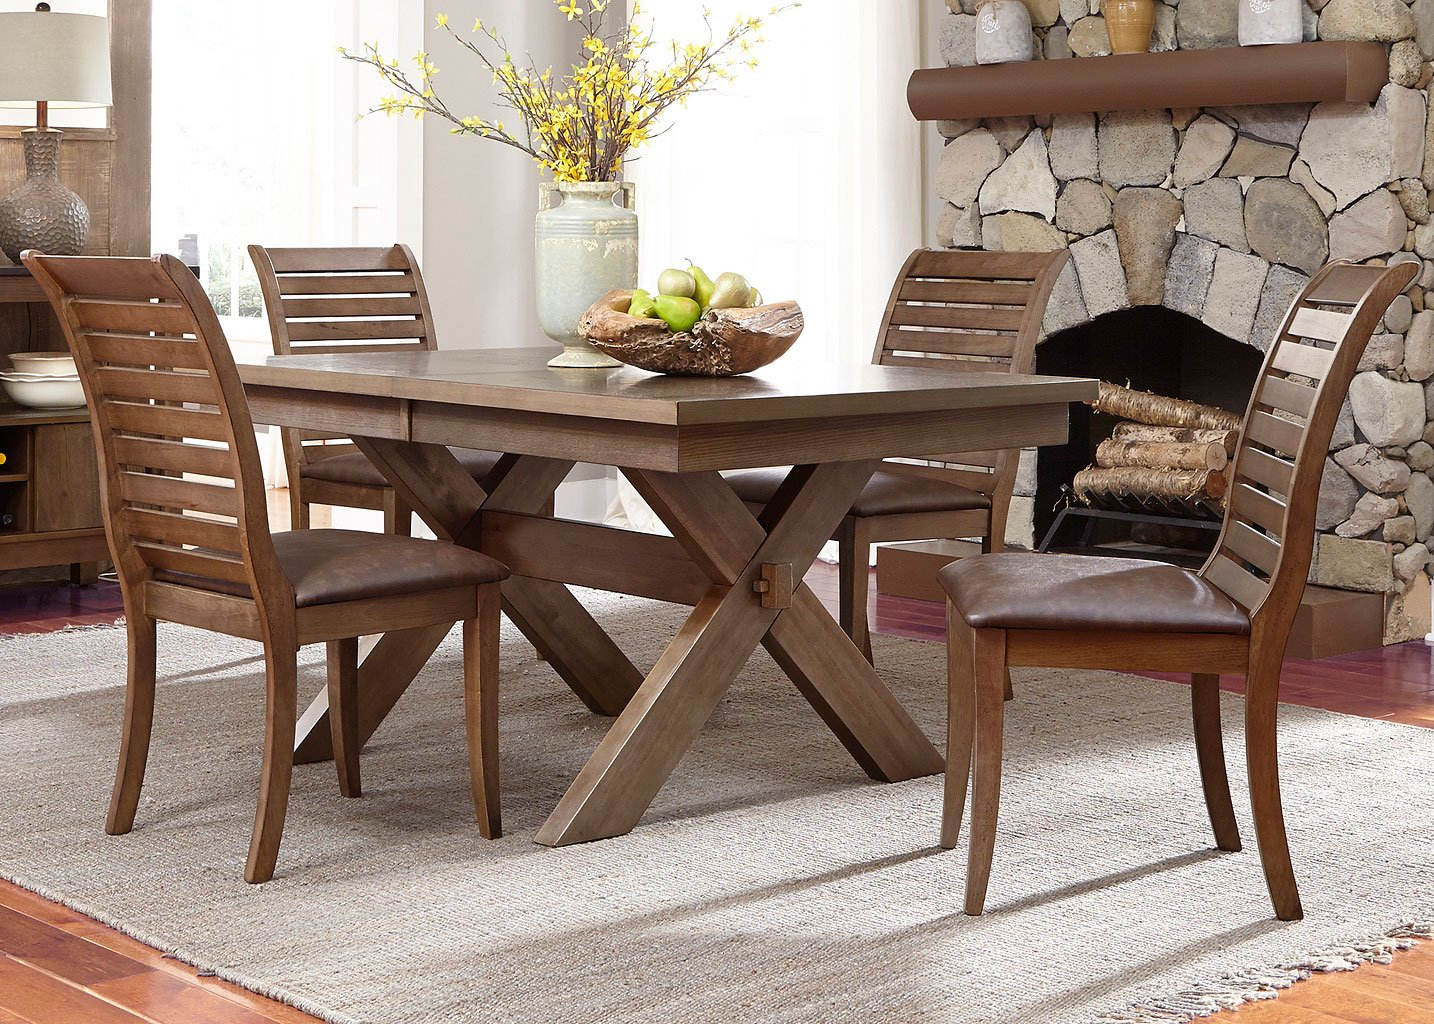 Bayside Square To Round Dining Table: Bayside Crossing Rectangular Dining Set W/ Upholstered